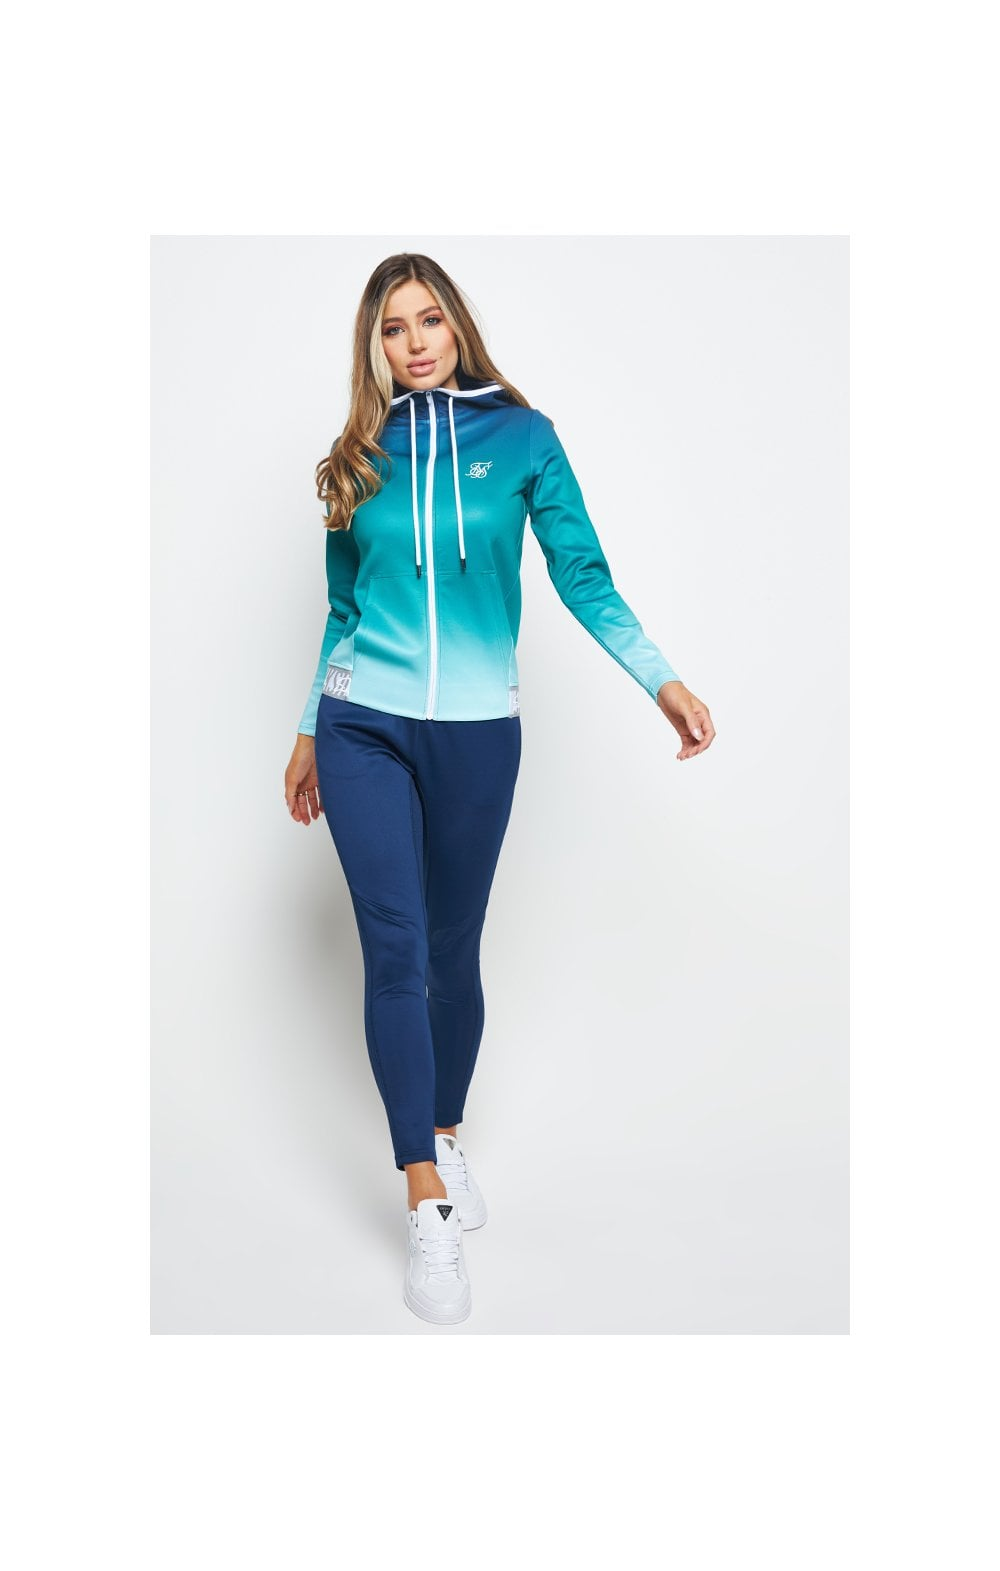 SikSilk Fade Tape Track Jacket - Navy & Teal (3)